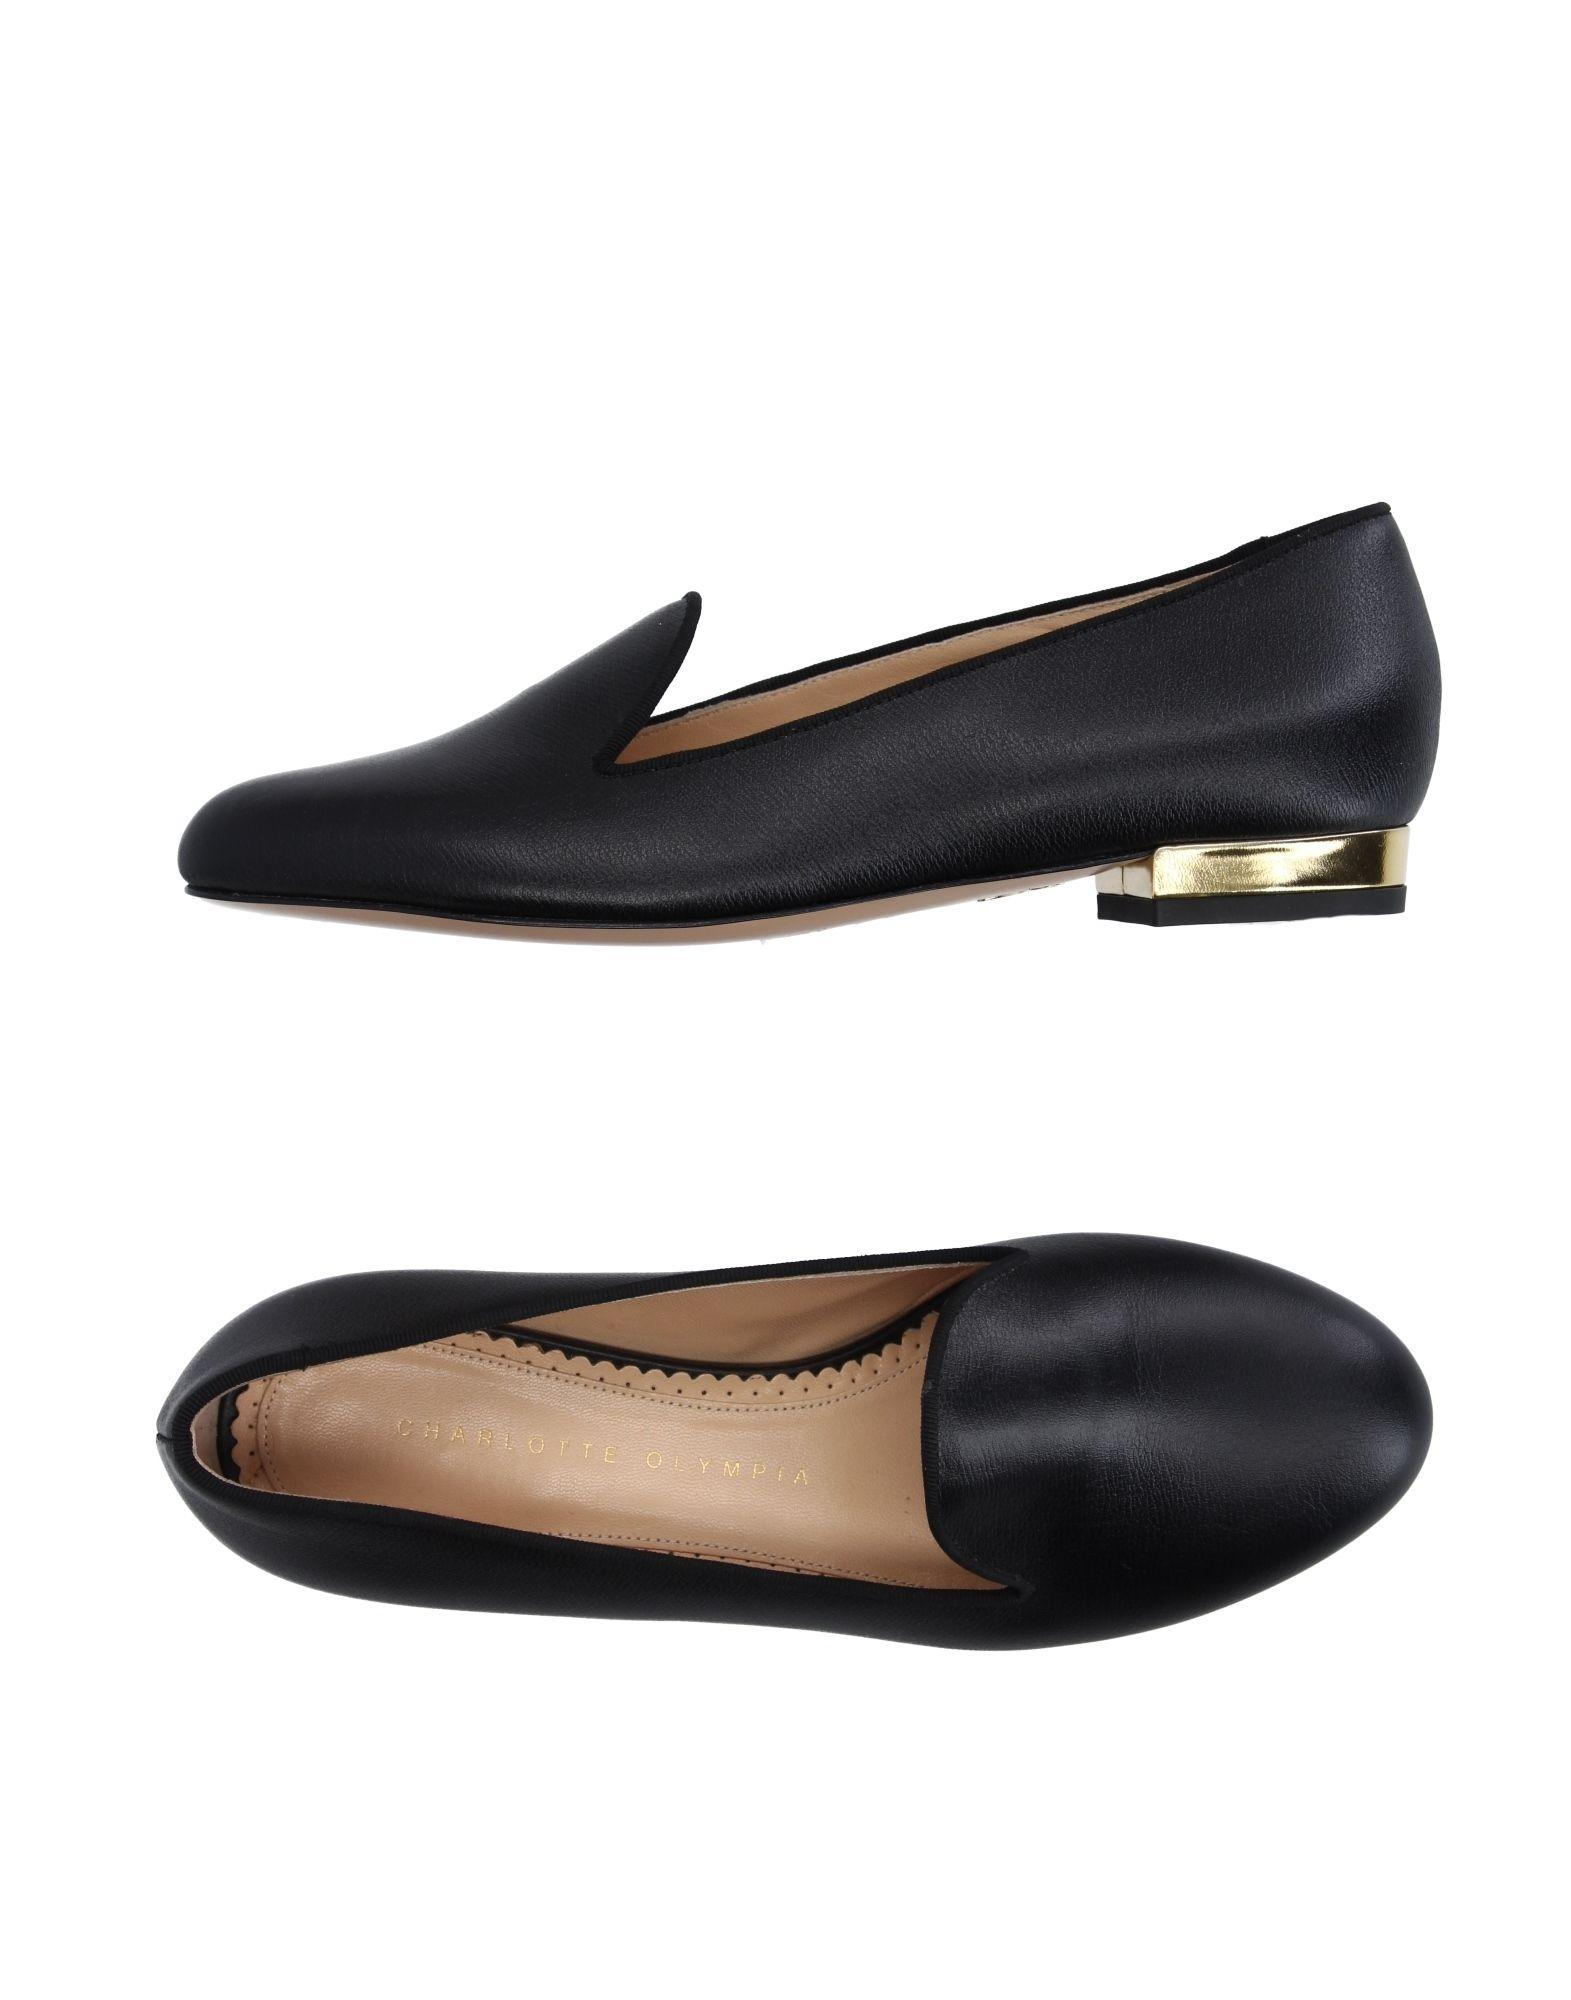 Charlotte Olympia Loafers In Black